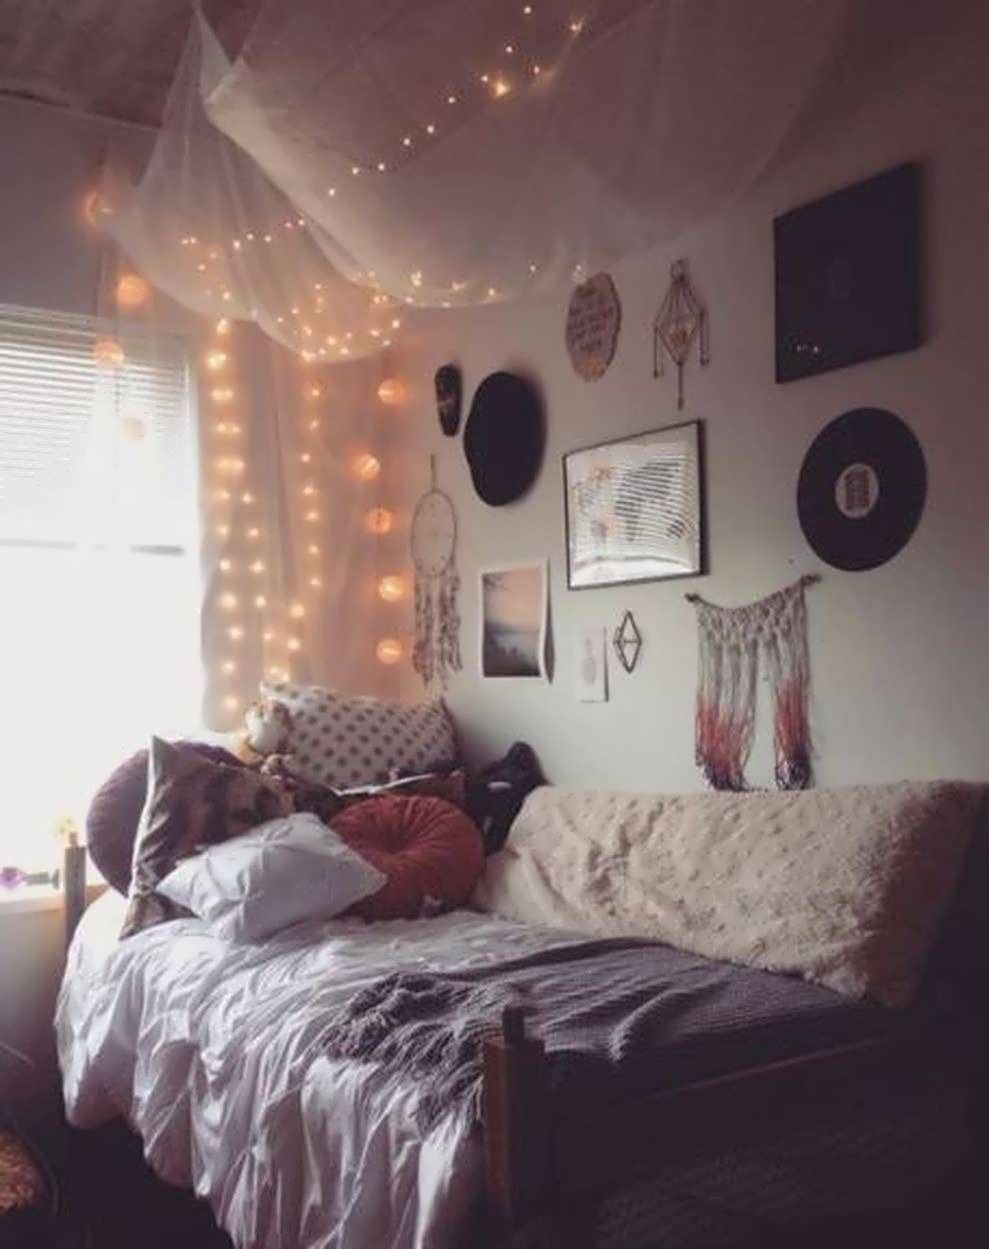 Best Photo Of Apartment Bedrooms Ideas Apartment Bedrooms Ideas 7 Beautiful Cute Ideas For Bedroom Cute Apart Cool Dorm Rooms Cute Dorm Rooms Dorm Room Decor